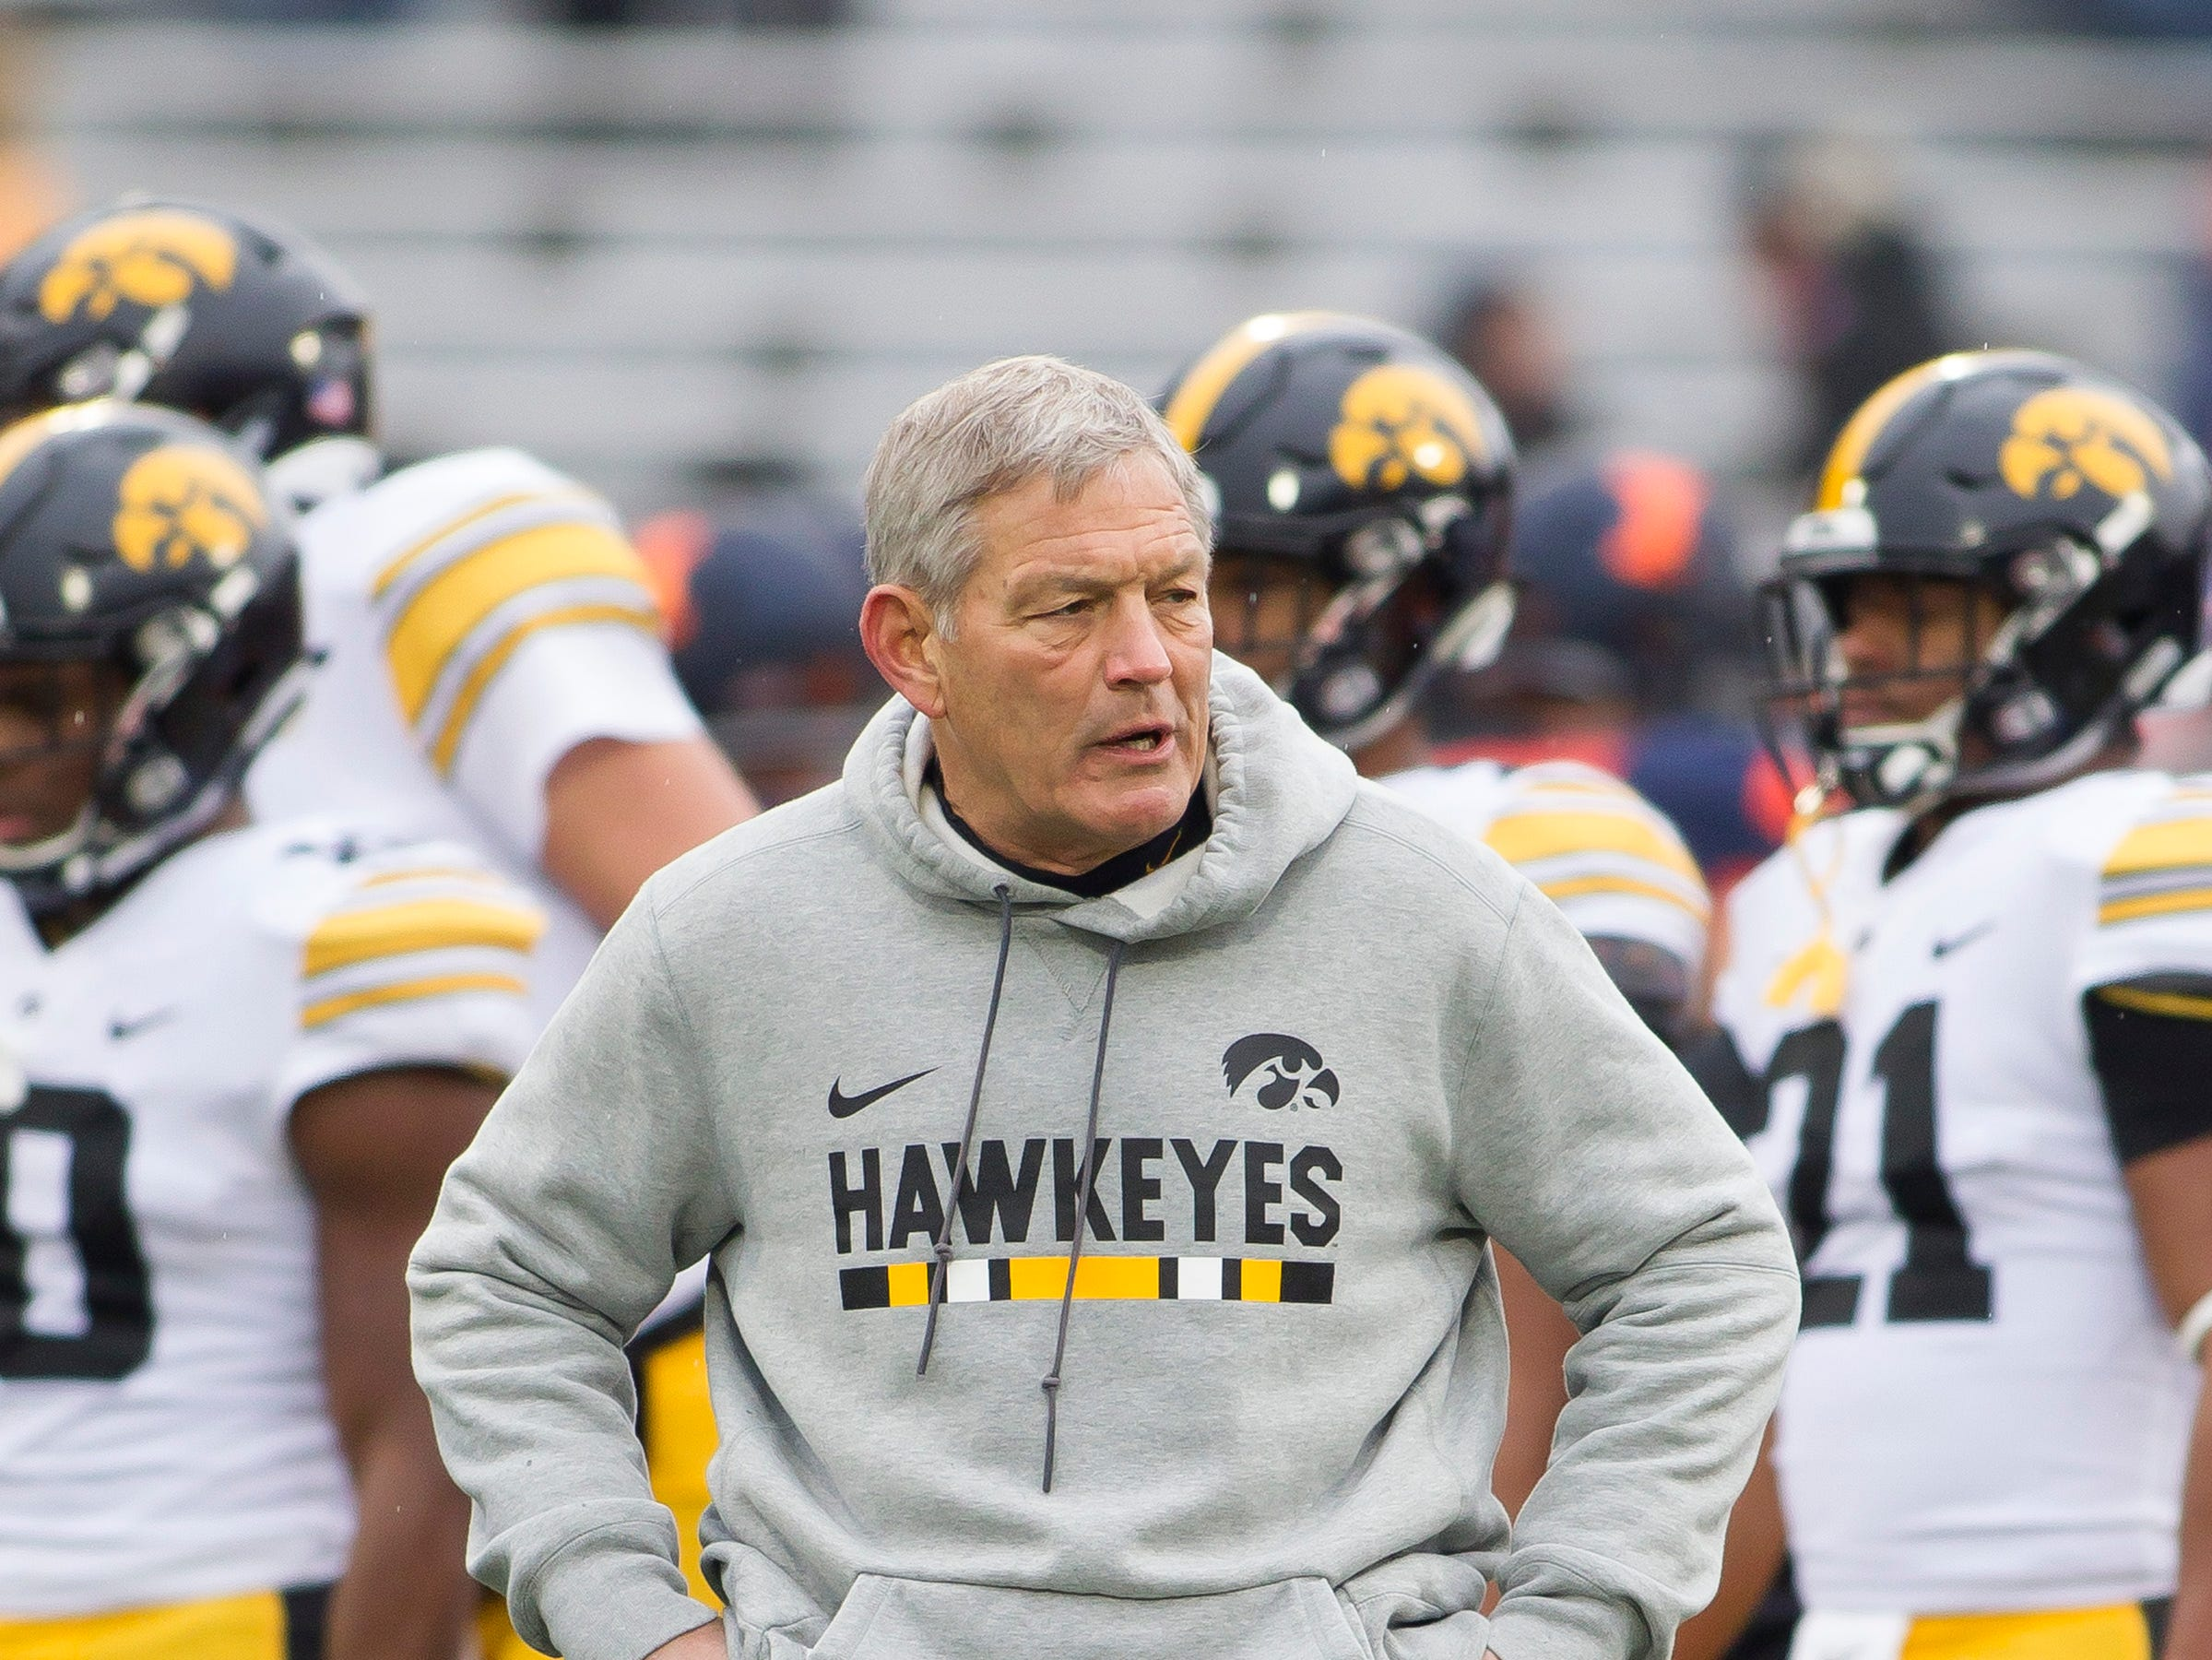 Nov 17, 2018; Champaign, IL, USA; Iowa Hawkeyes head coach Kirk Ferentz before the start of the first quarter against the Illinois Fighting Illini at Memorial Stadium.